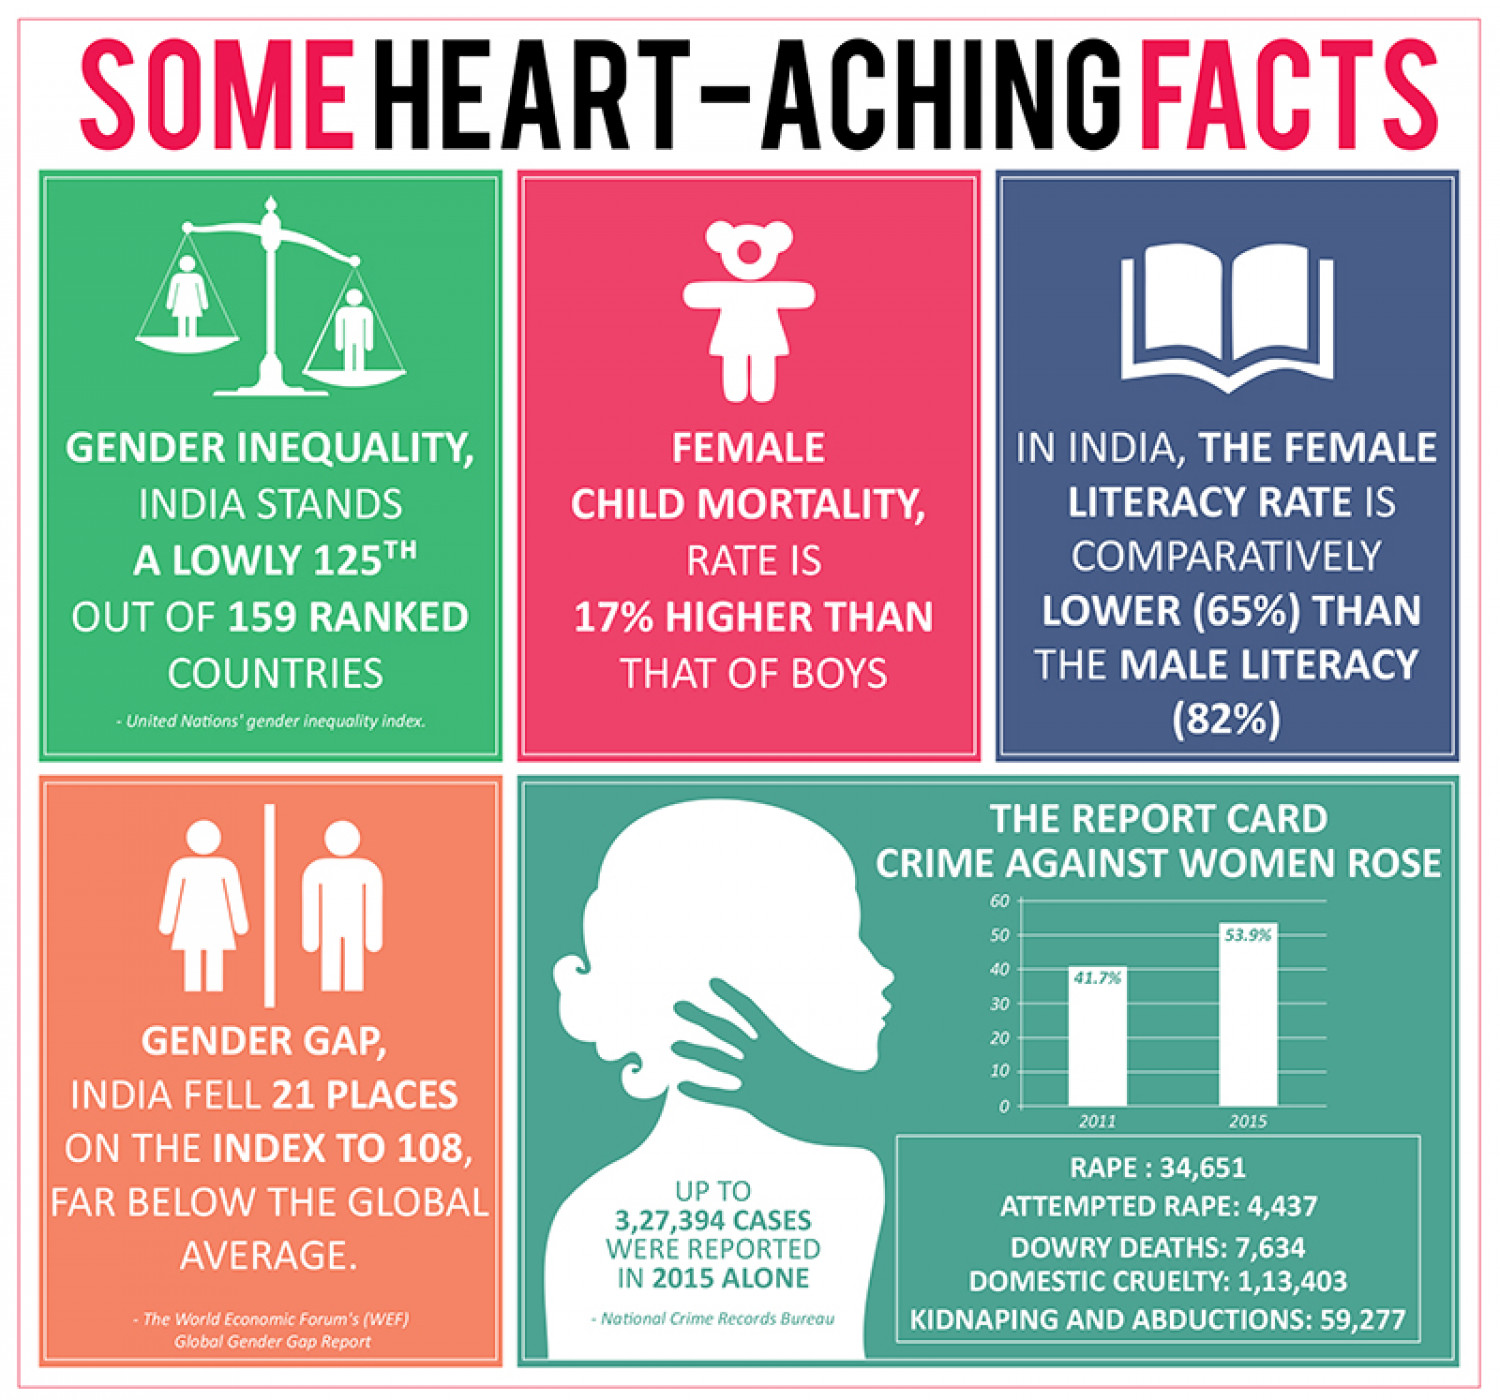 Gender Sensitisation Fact Infographic